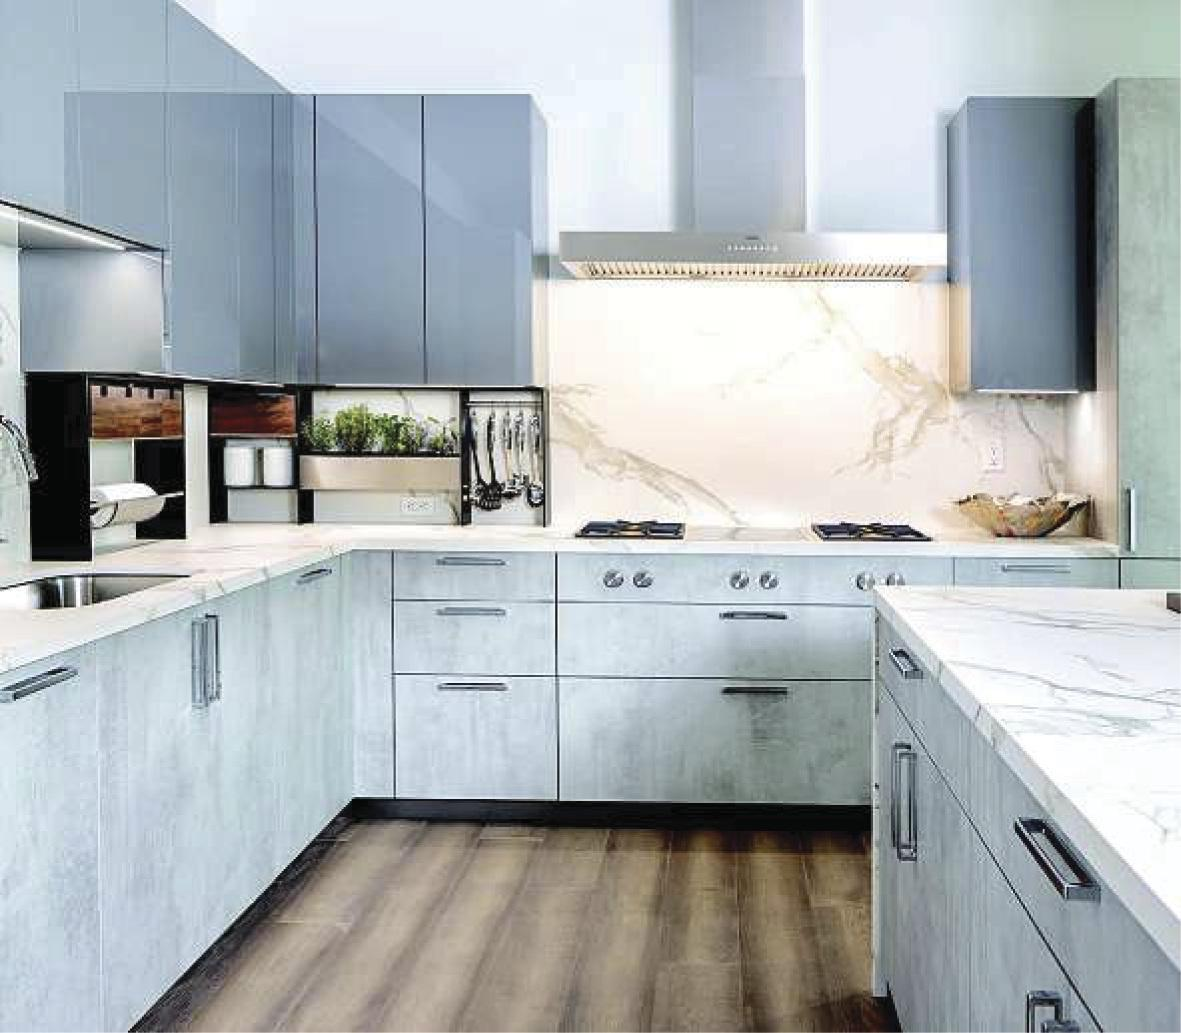 Condo Life: High-rise residents boast high-end kitchen amenities ...